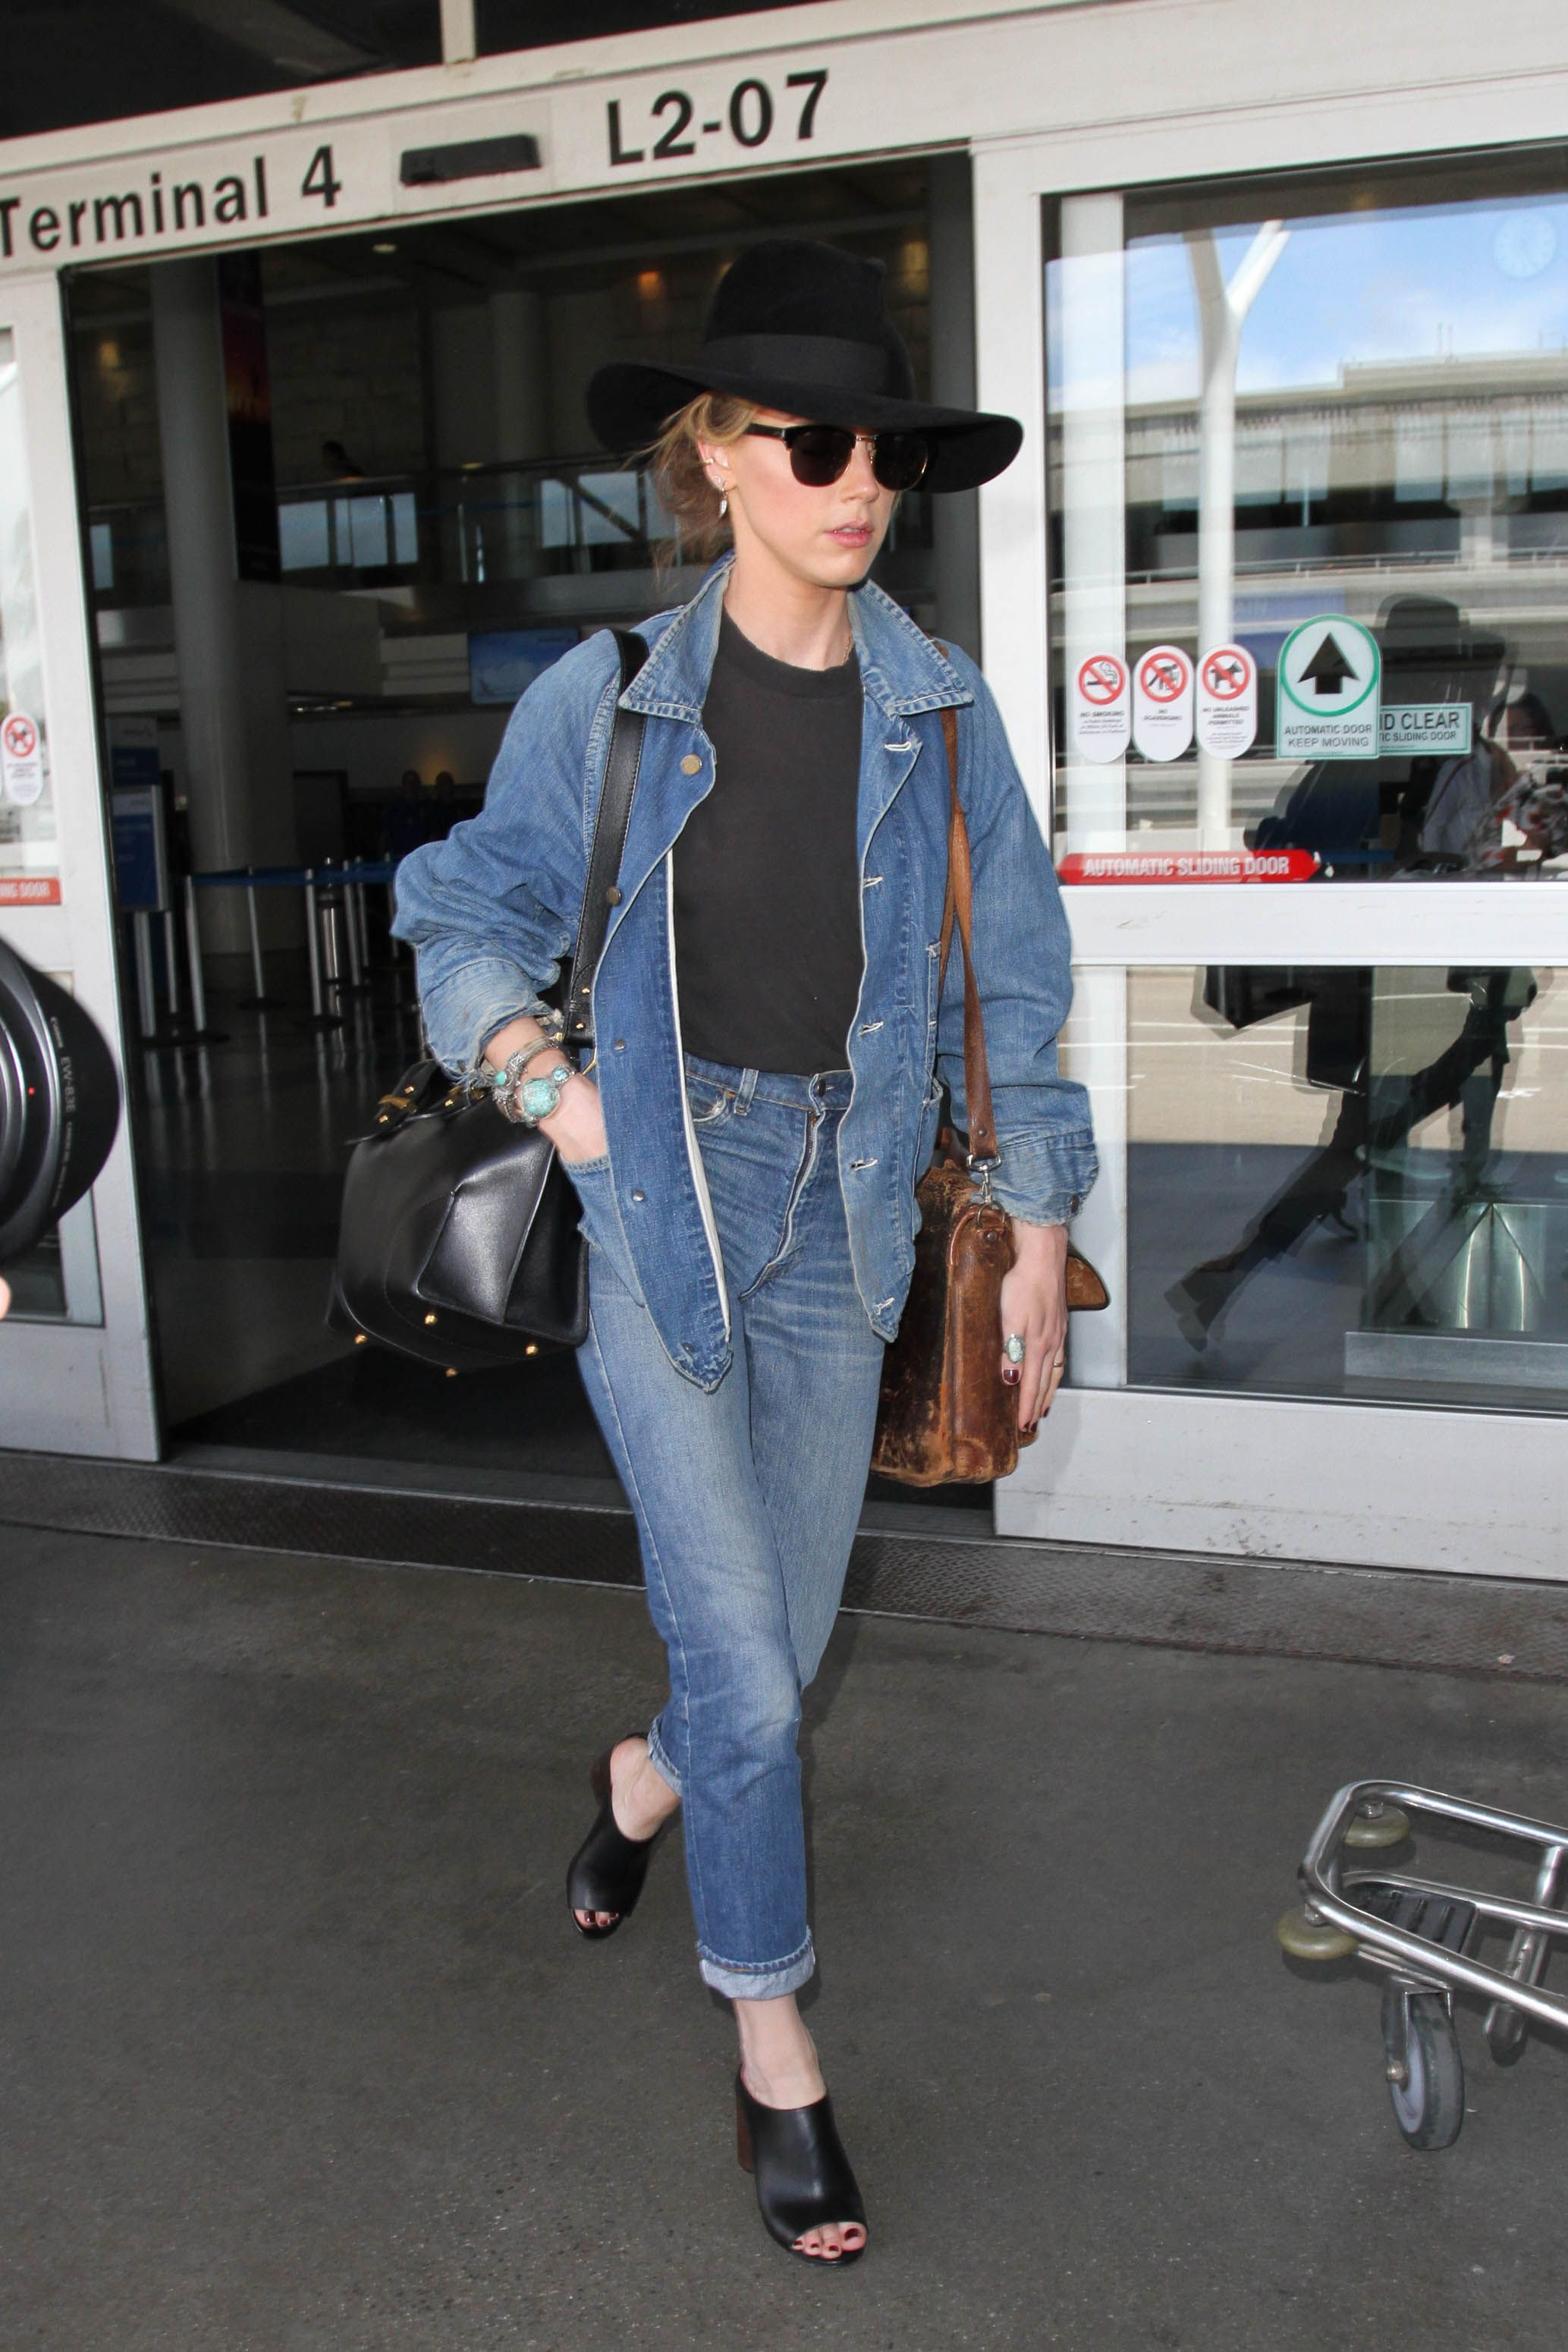 b682a76e207 105 Celebrities Looking Chic at the Airport—in Clothes You d Actually Want  to Wear